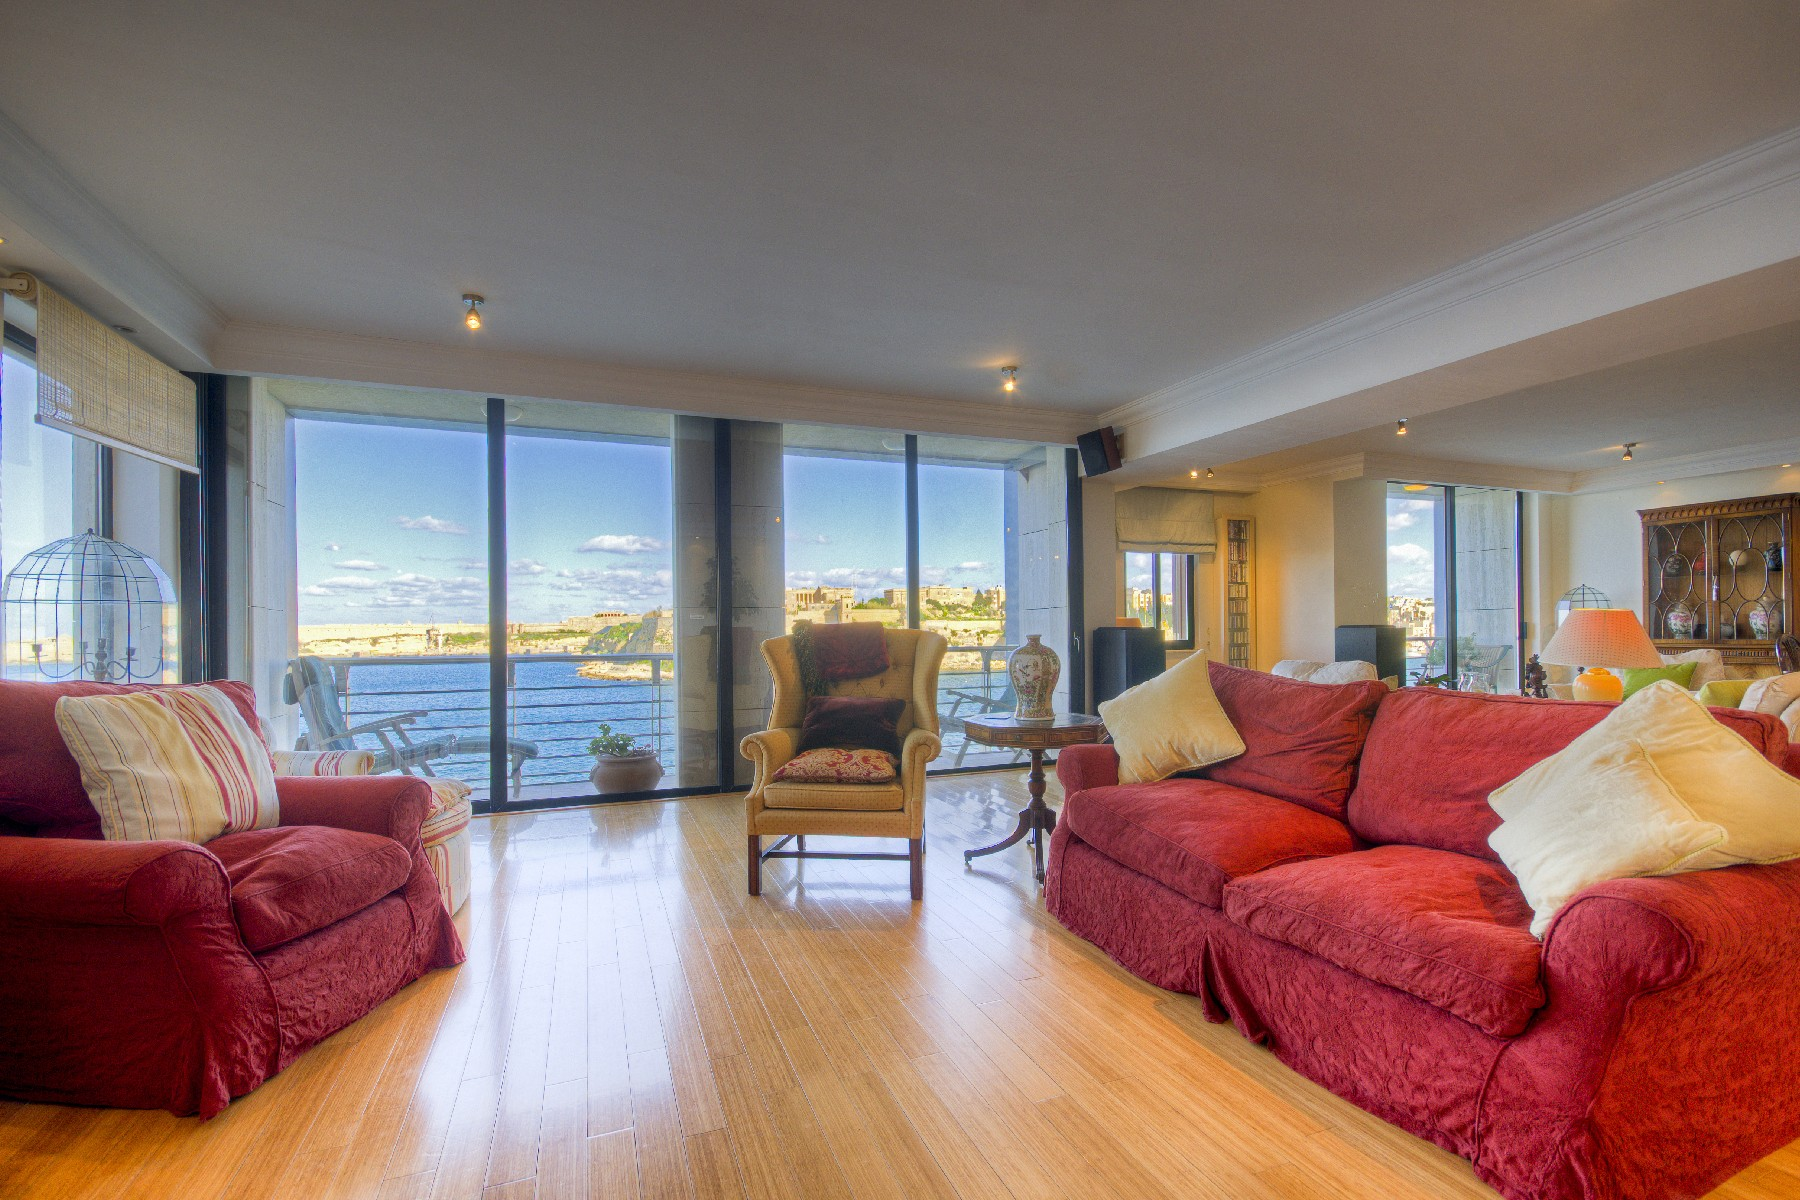 Apartment for Sale at Ultra Luxury Waterfront Top Floor Apartment Other Malta, Cities In Malta Malta